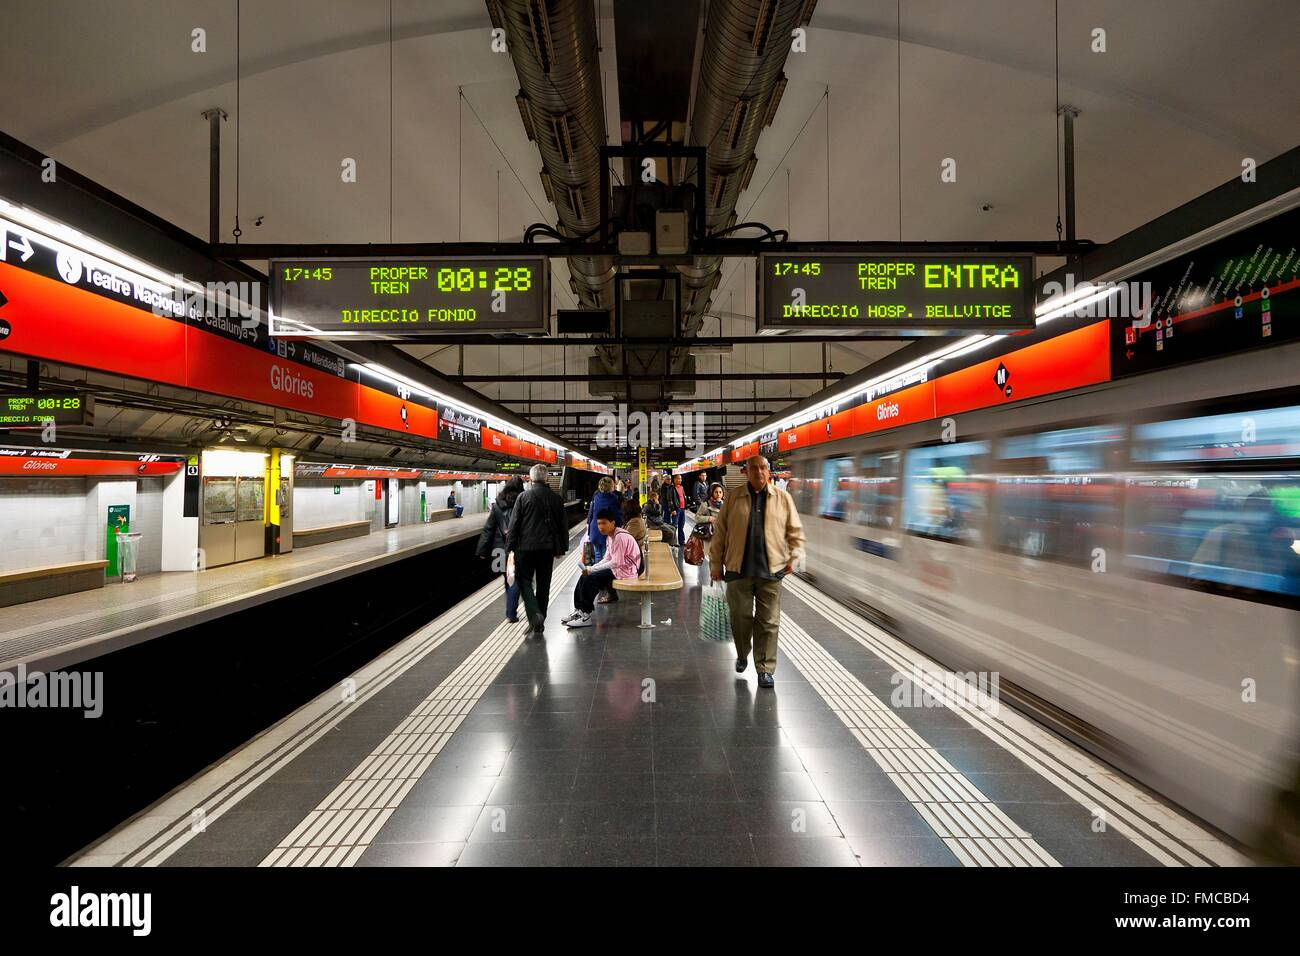 Spain, Catalonia, Barcelona, subway - Stock Image